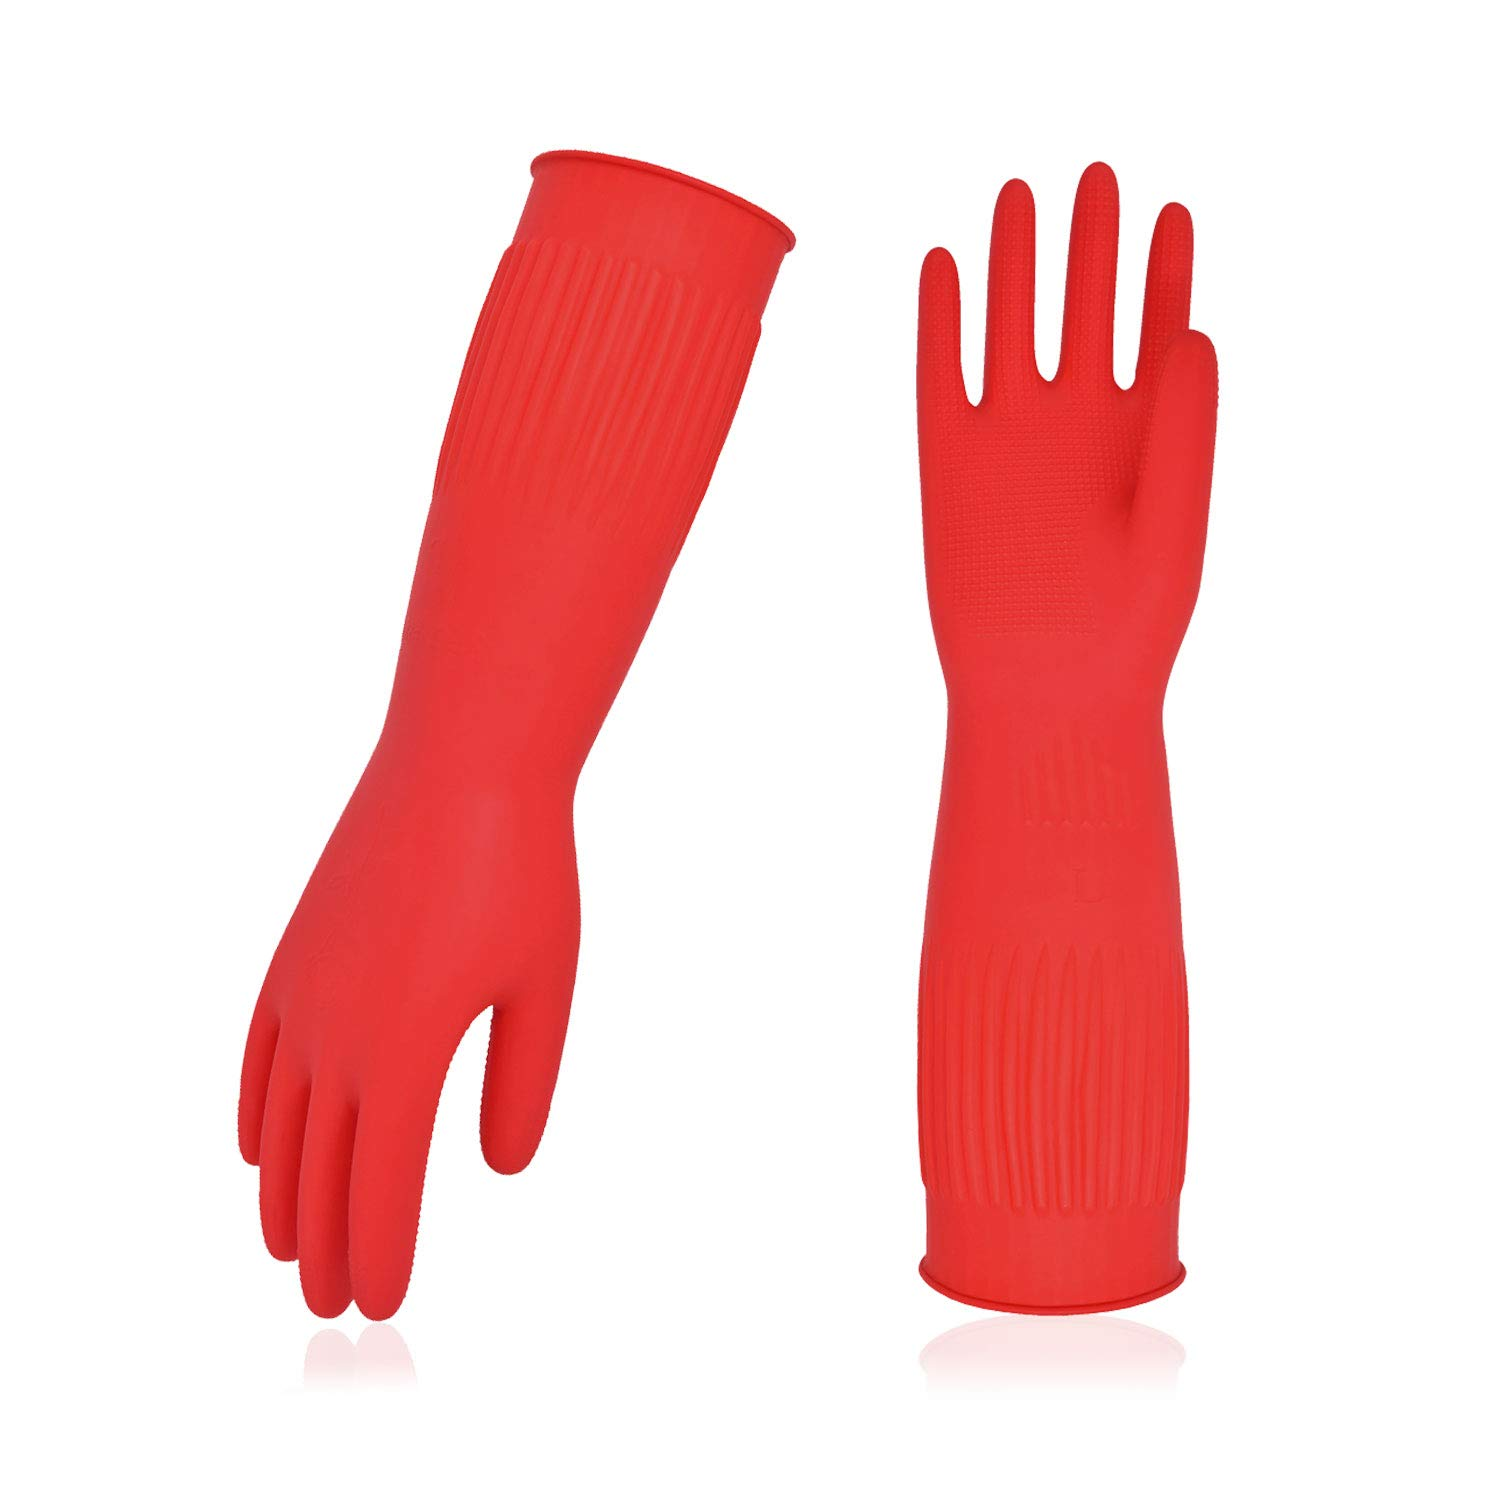 Vgo 10-Pairs Dishwashing Gloves, Reusable Household Gloves, Kitchen Gloves, Long Sleeve, Thick Latex, Cleaning, Washing, Working, Painting, Gardening, Pet Care (Size M, Red, RB2143)